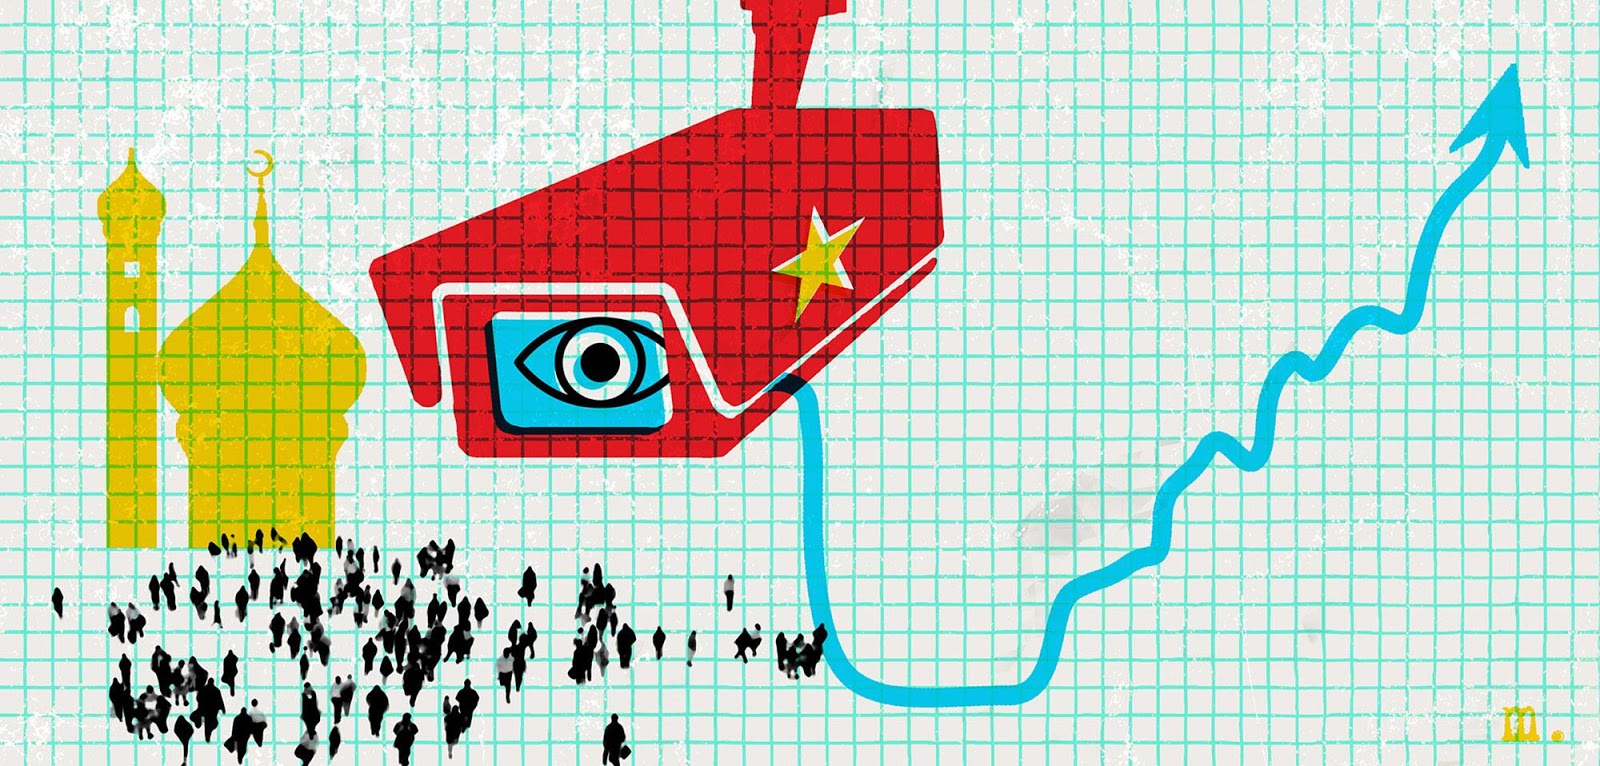 Rights organizations have described the Xinjiang region as a police state as the Chinese government has instituted invasive sureveillance measures including instaling 40,000 facial recognition cameras. Source: Foreing Policy